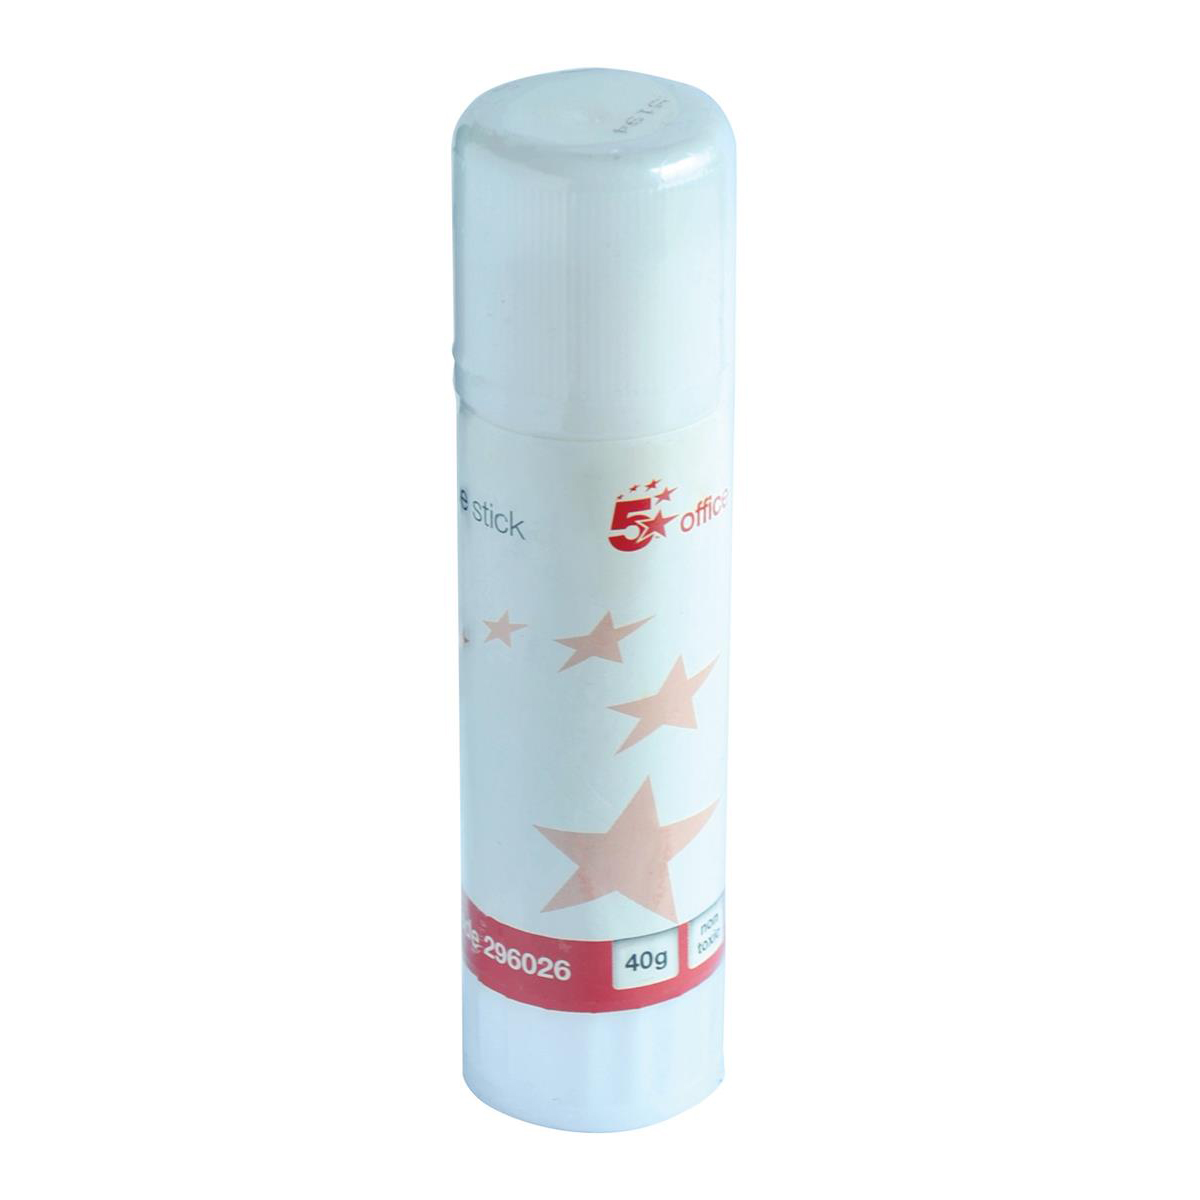 Glue Sticks 5 Star Office Glue Stick Large 40g Pack 30